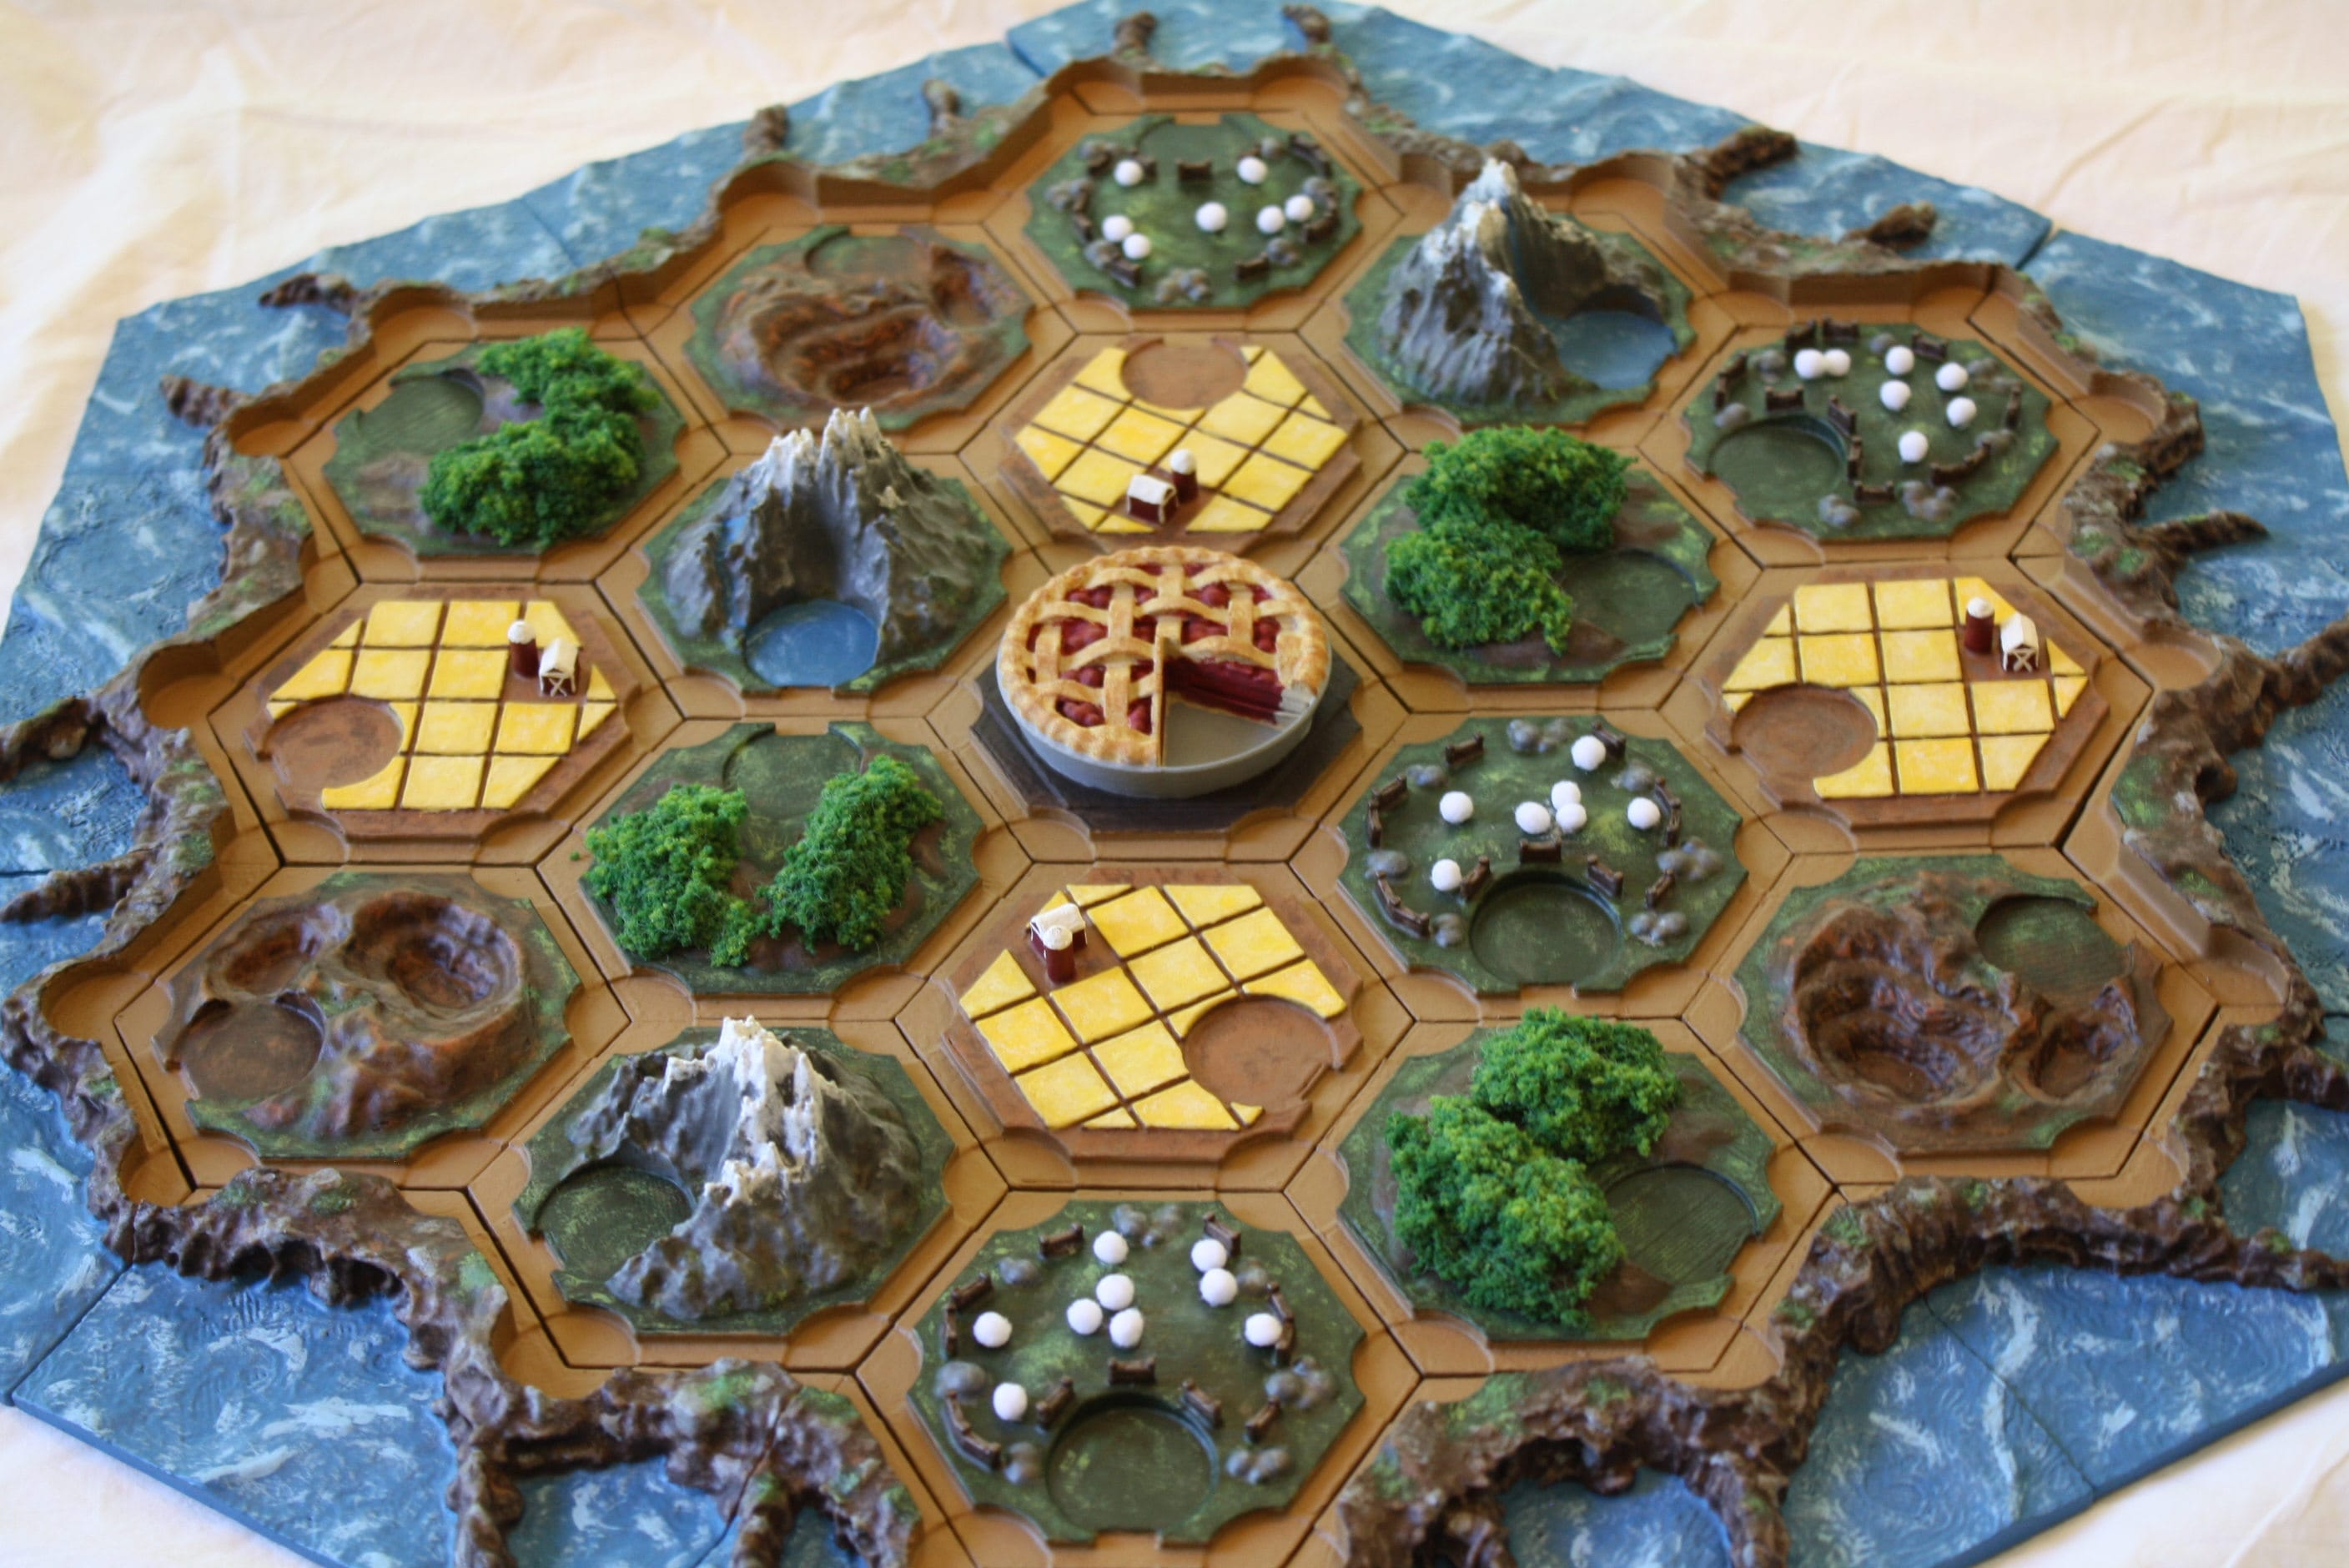 It's just a picture of Mesmerizing Settlers of Catan Printable